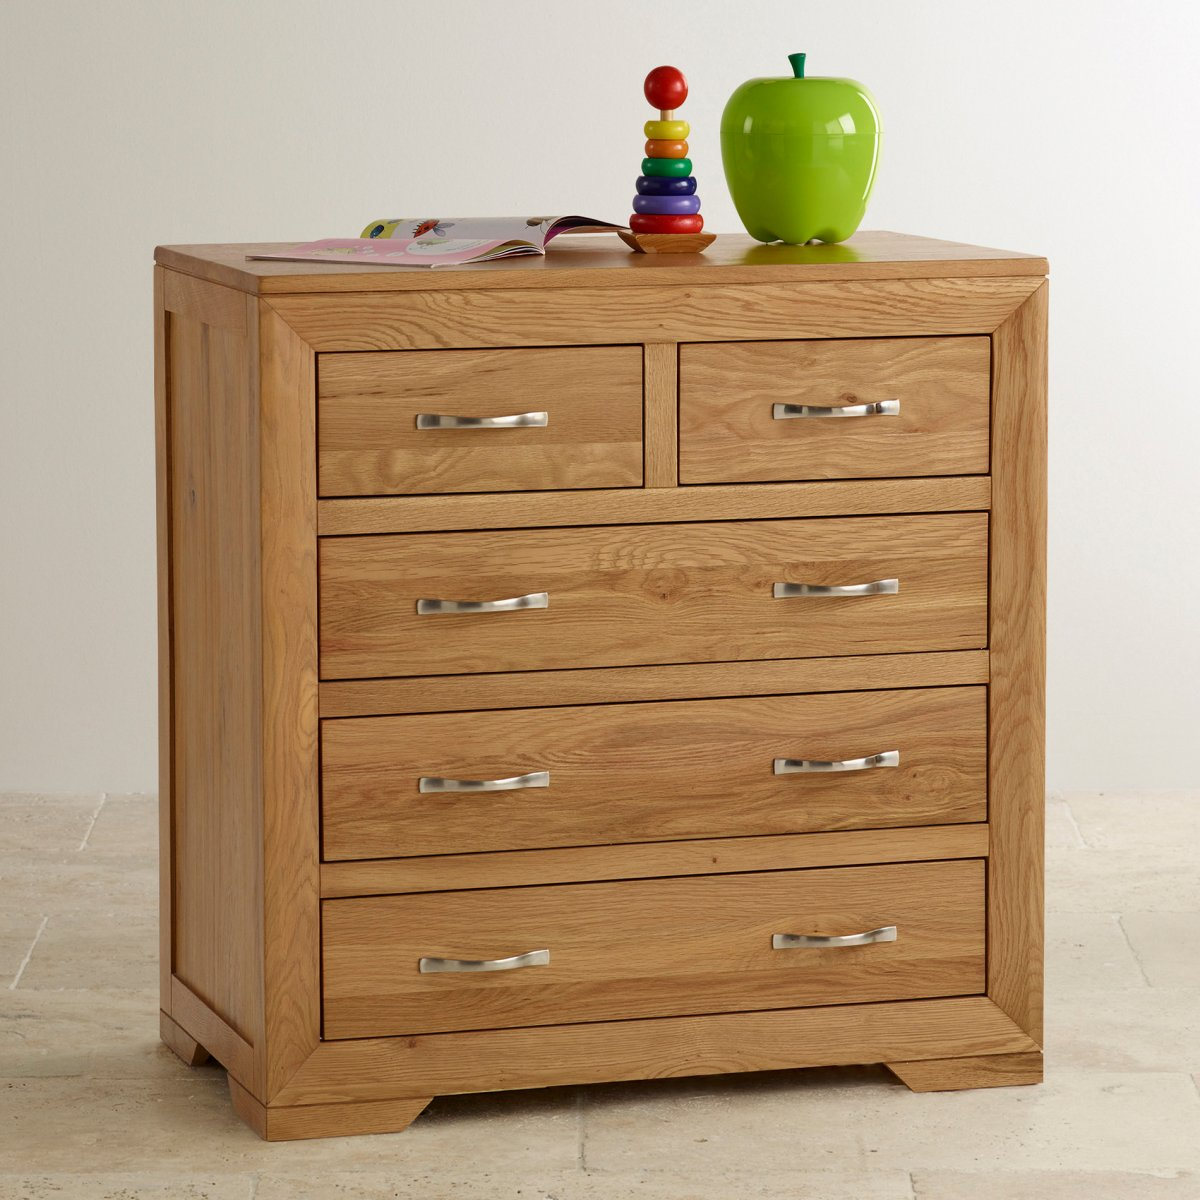 Bevel soft close chest of drawers in natural solid oak for Bedroom furniture soft close drawers